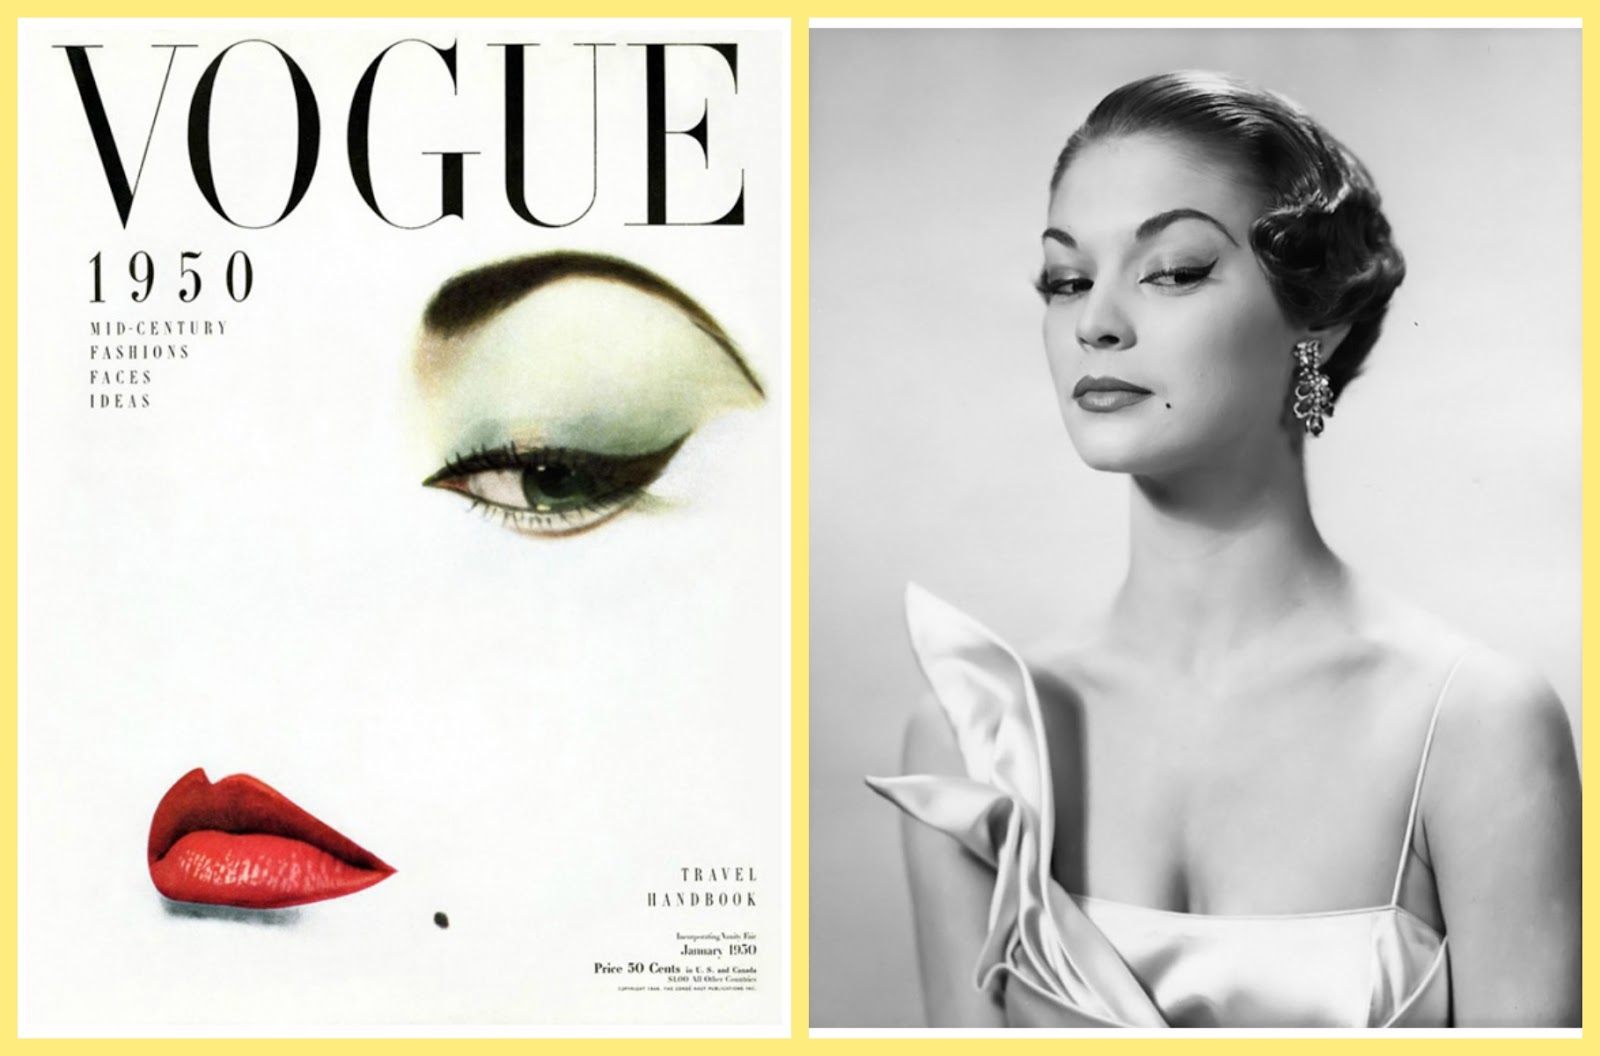 Top 10 Fashion Magazines - Elle, Harper s BAZAAR, Vogue, Marie 5